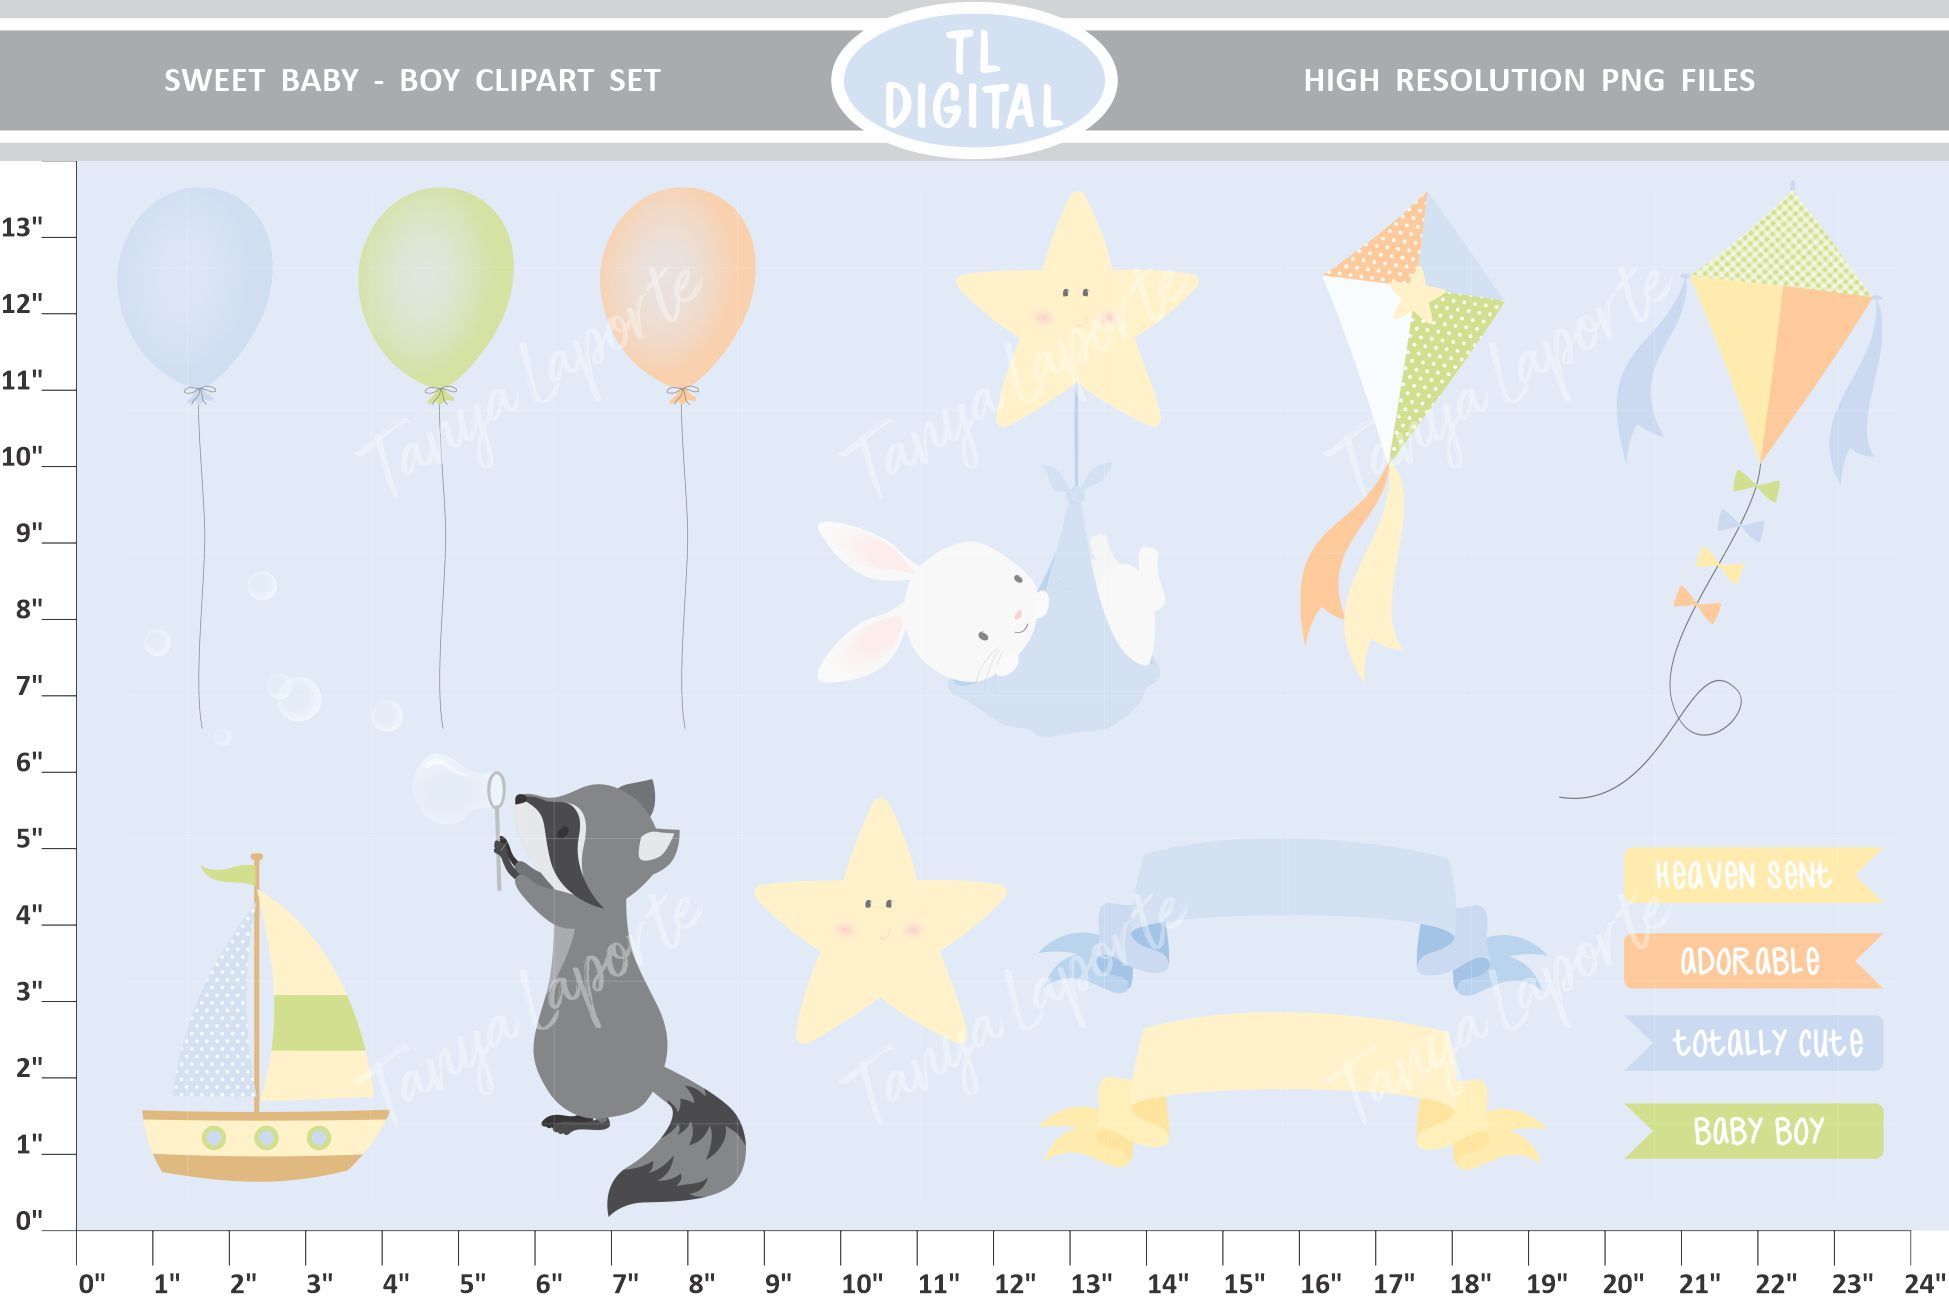 Sweet Baby Clipart Set Boy 25 Graphics Graphic By Tl Digital Creative Fabrica